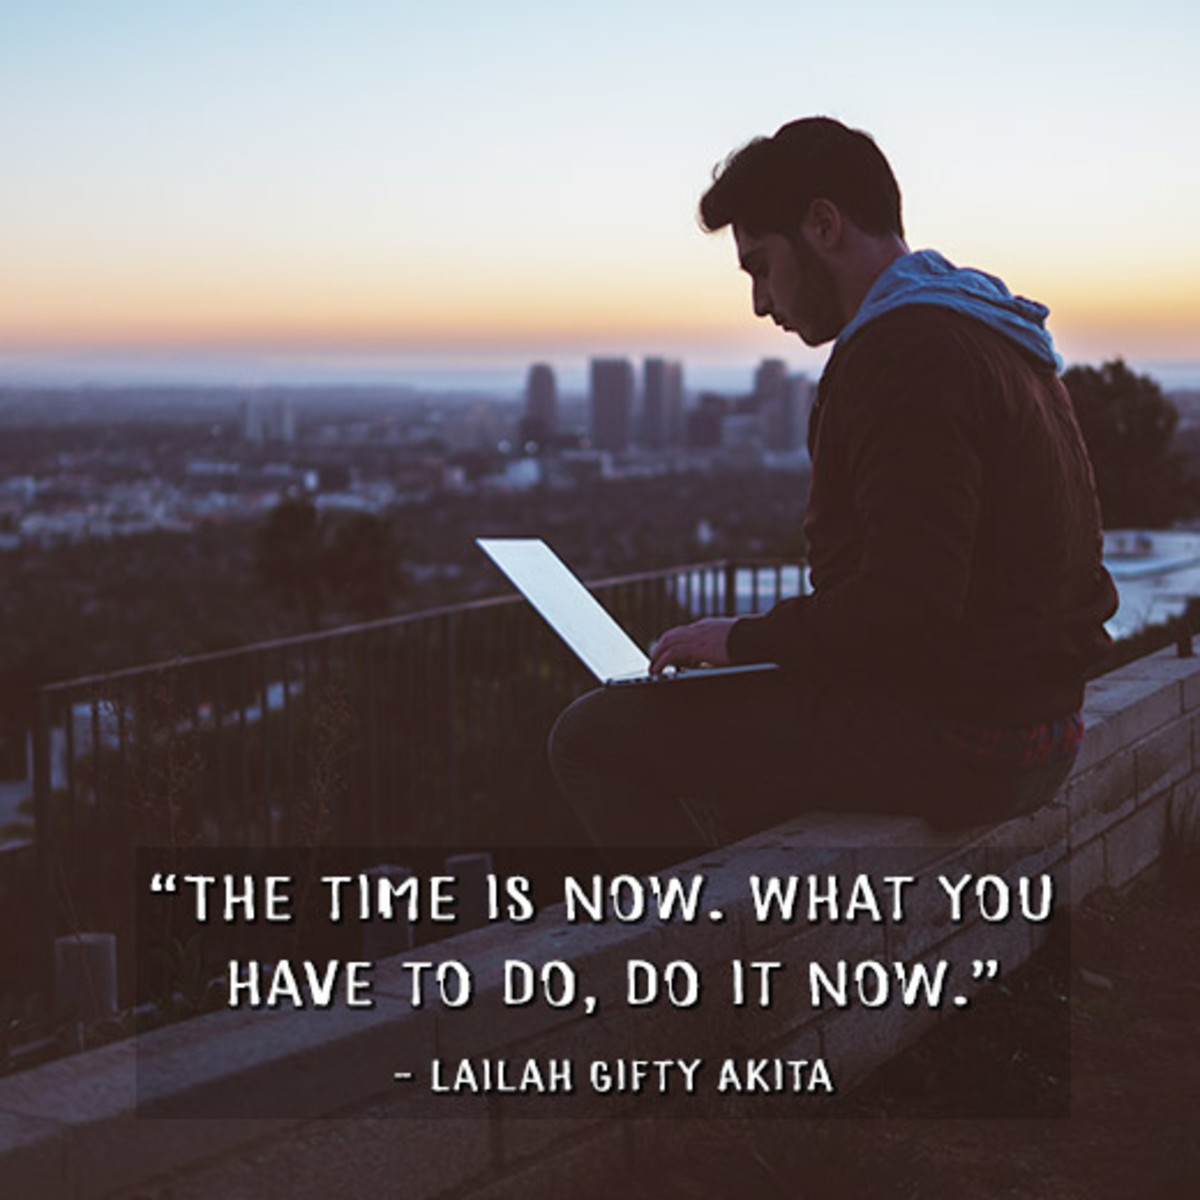 """The time is now. What you have to do, do it now."" —Lailah Gifty Akita"